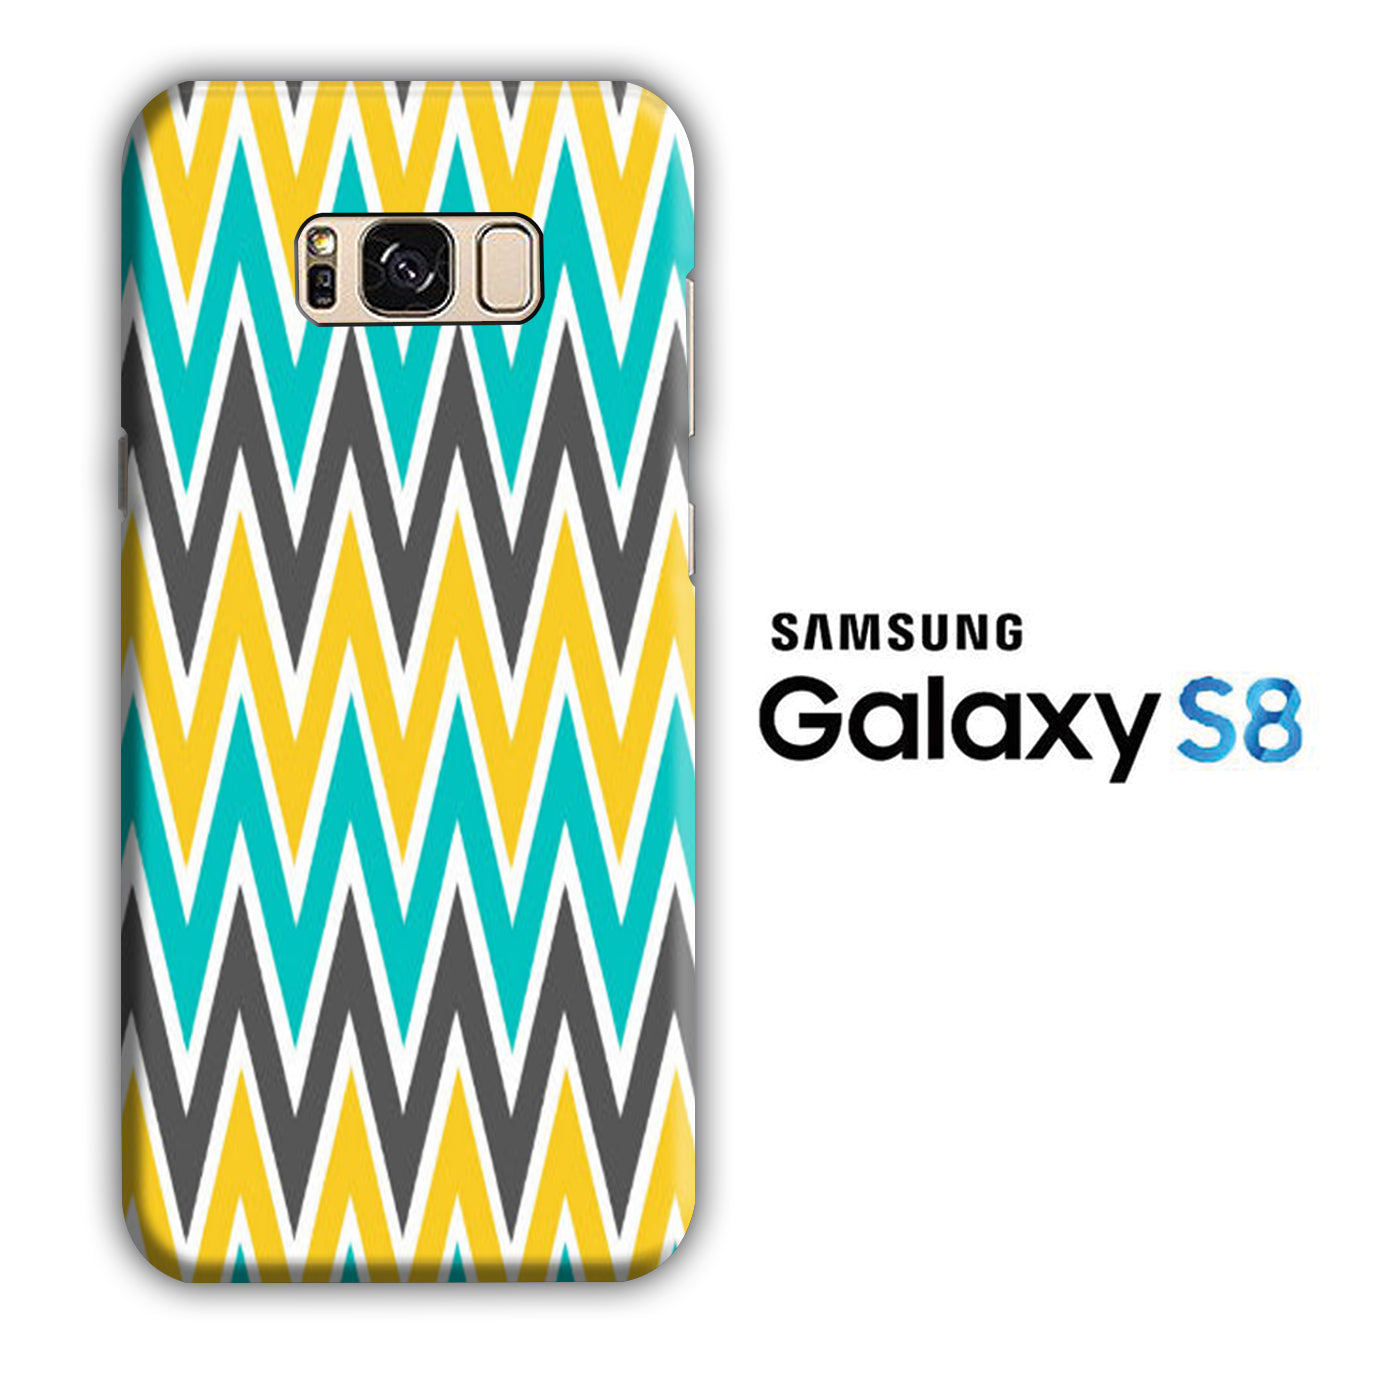 Chevron 3 Colour Samsung Galaxy S8 3D Case